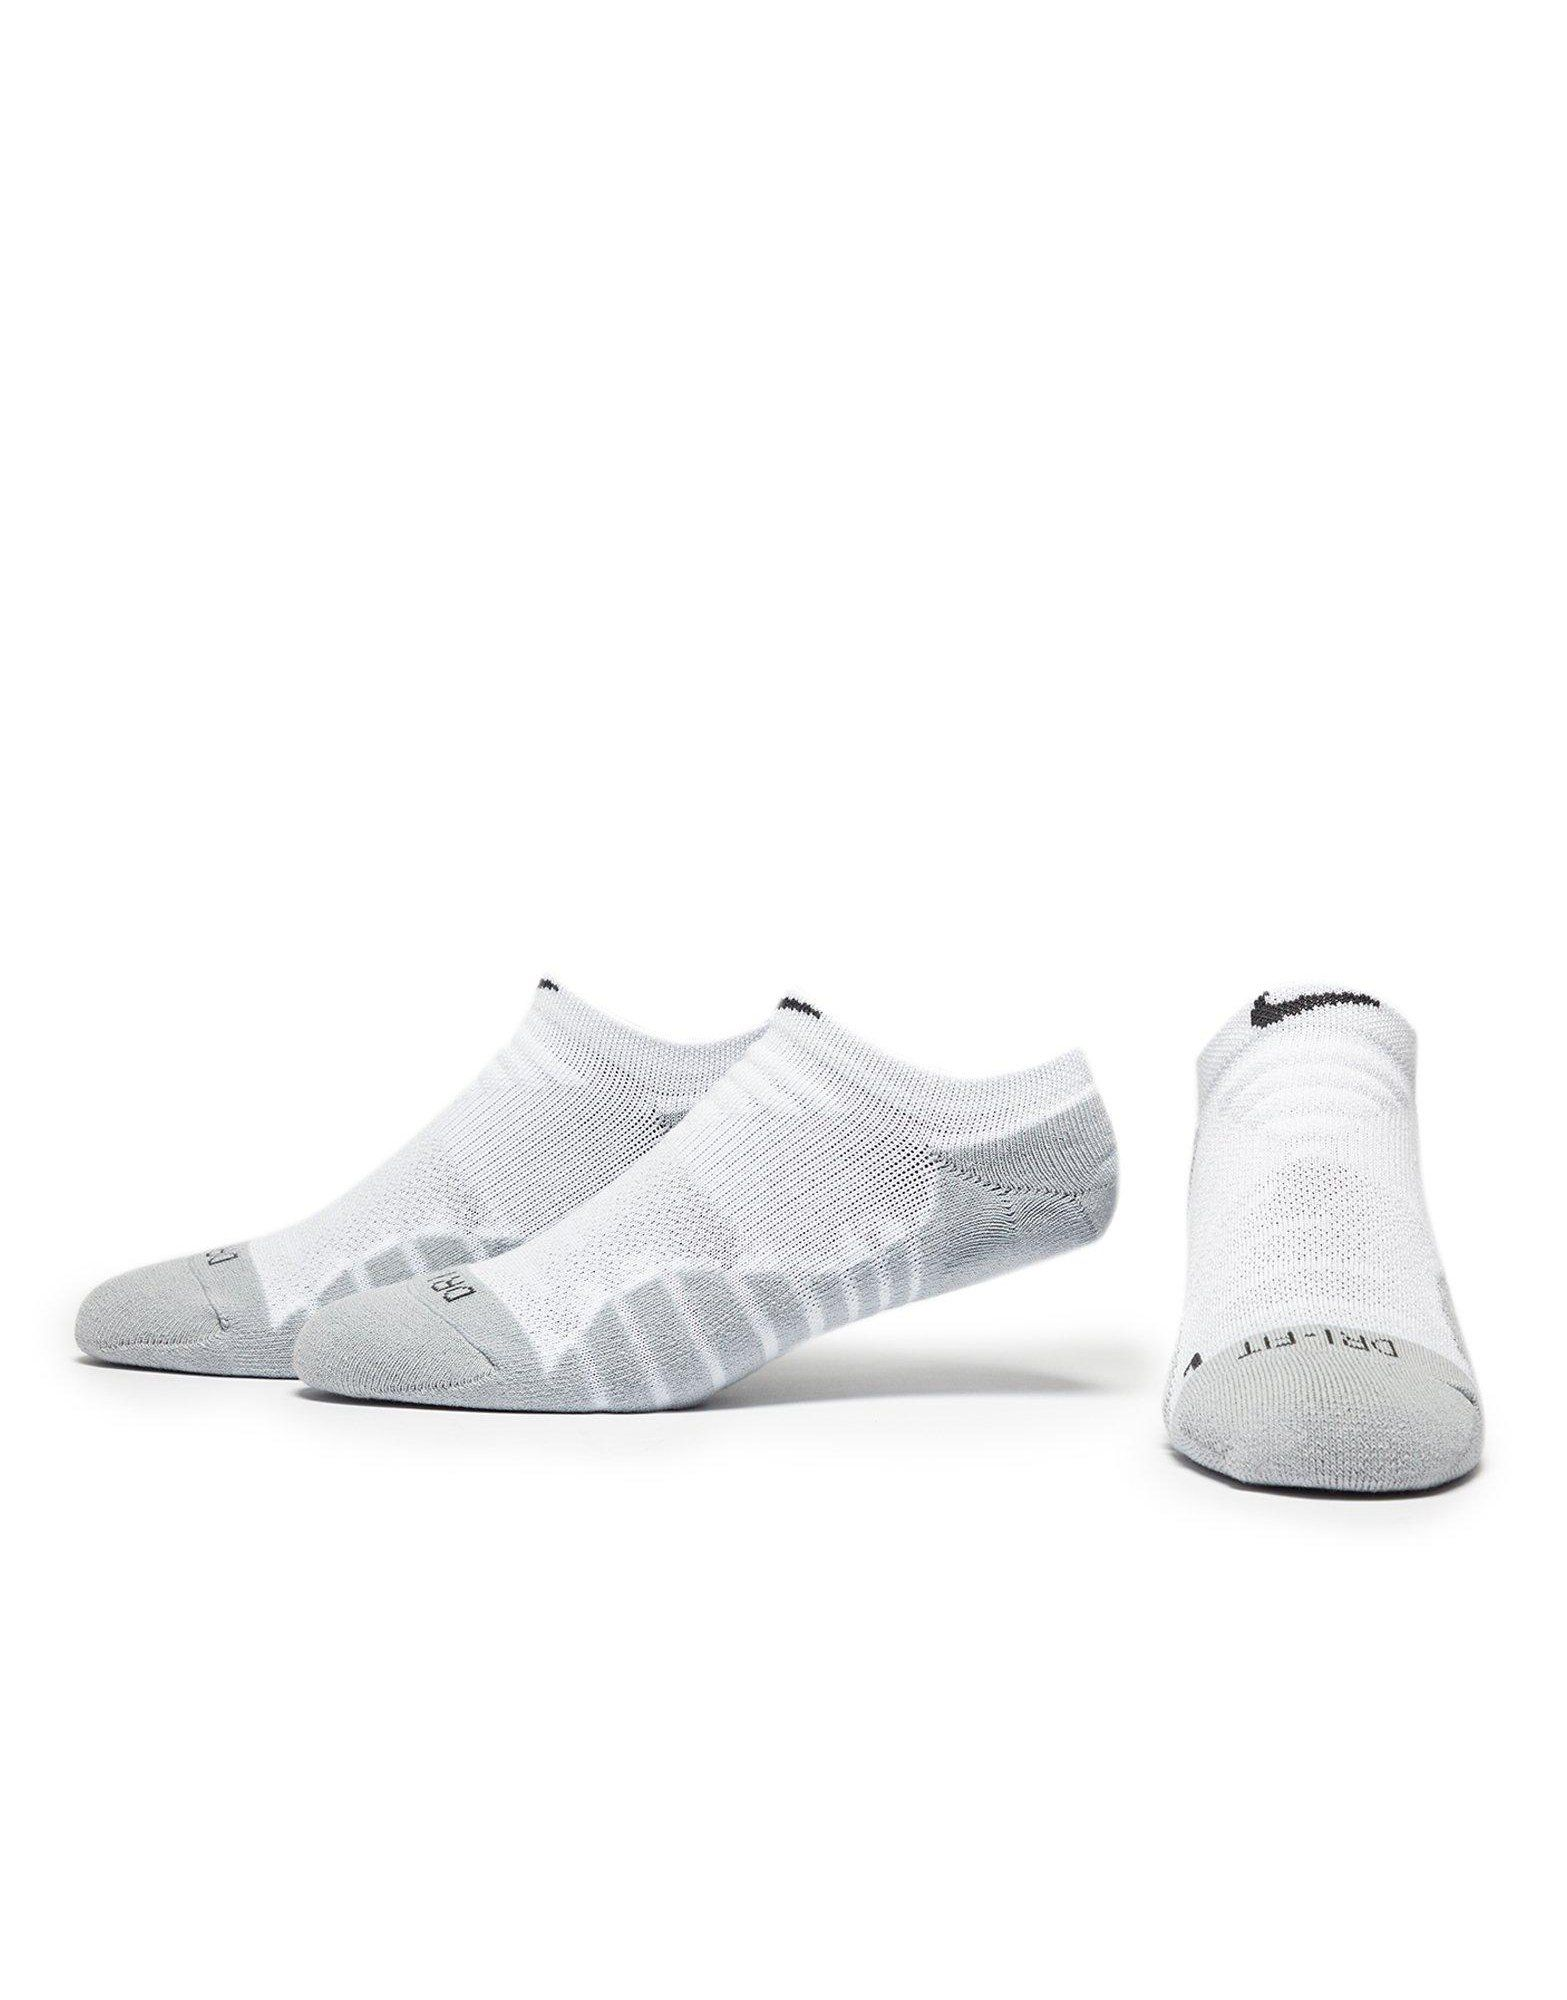 512012160a8 Nike Chaussettes 3 Pack No Show Running Femme